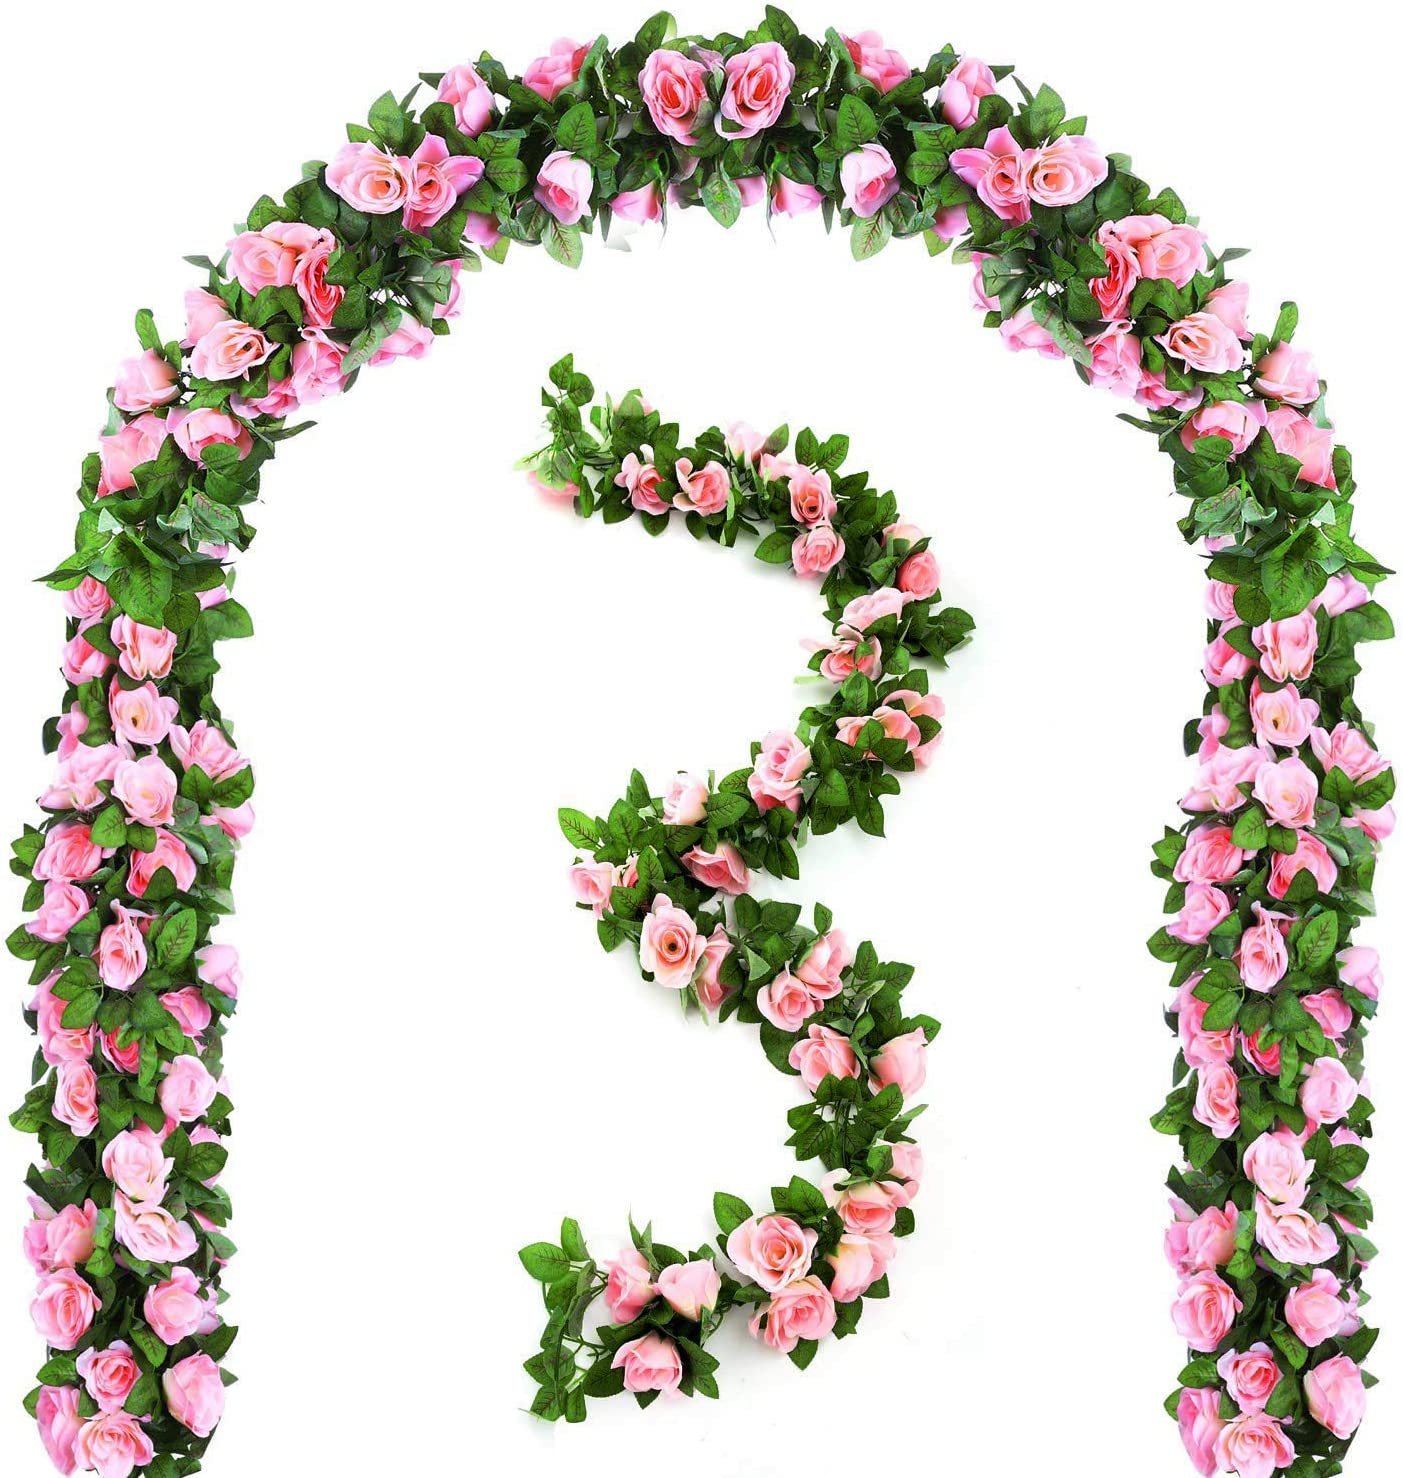 Pink Mazheny 2 Pack 6.5 FT Artificial Flowers Rose Vine Plants Hanging Rose Ivy Wedding Garland Greenery Home Hotel Office Party Garden Craft Art Decor